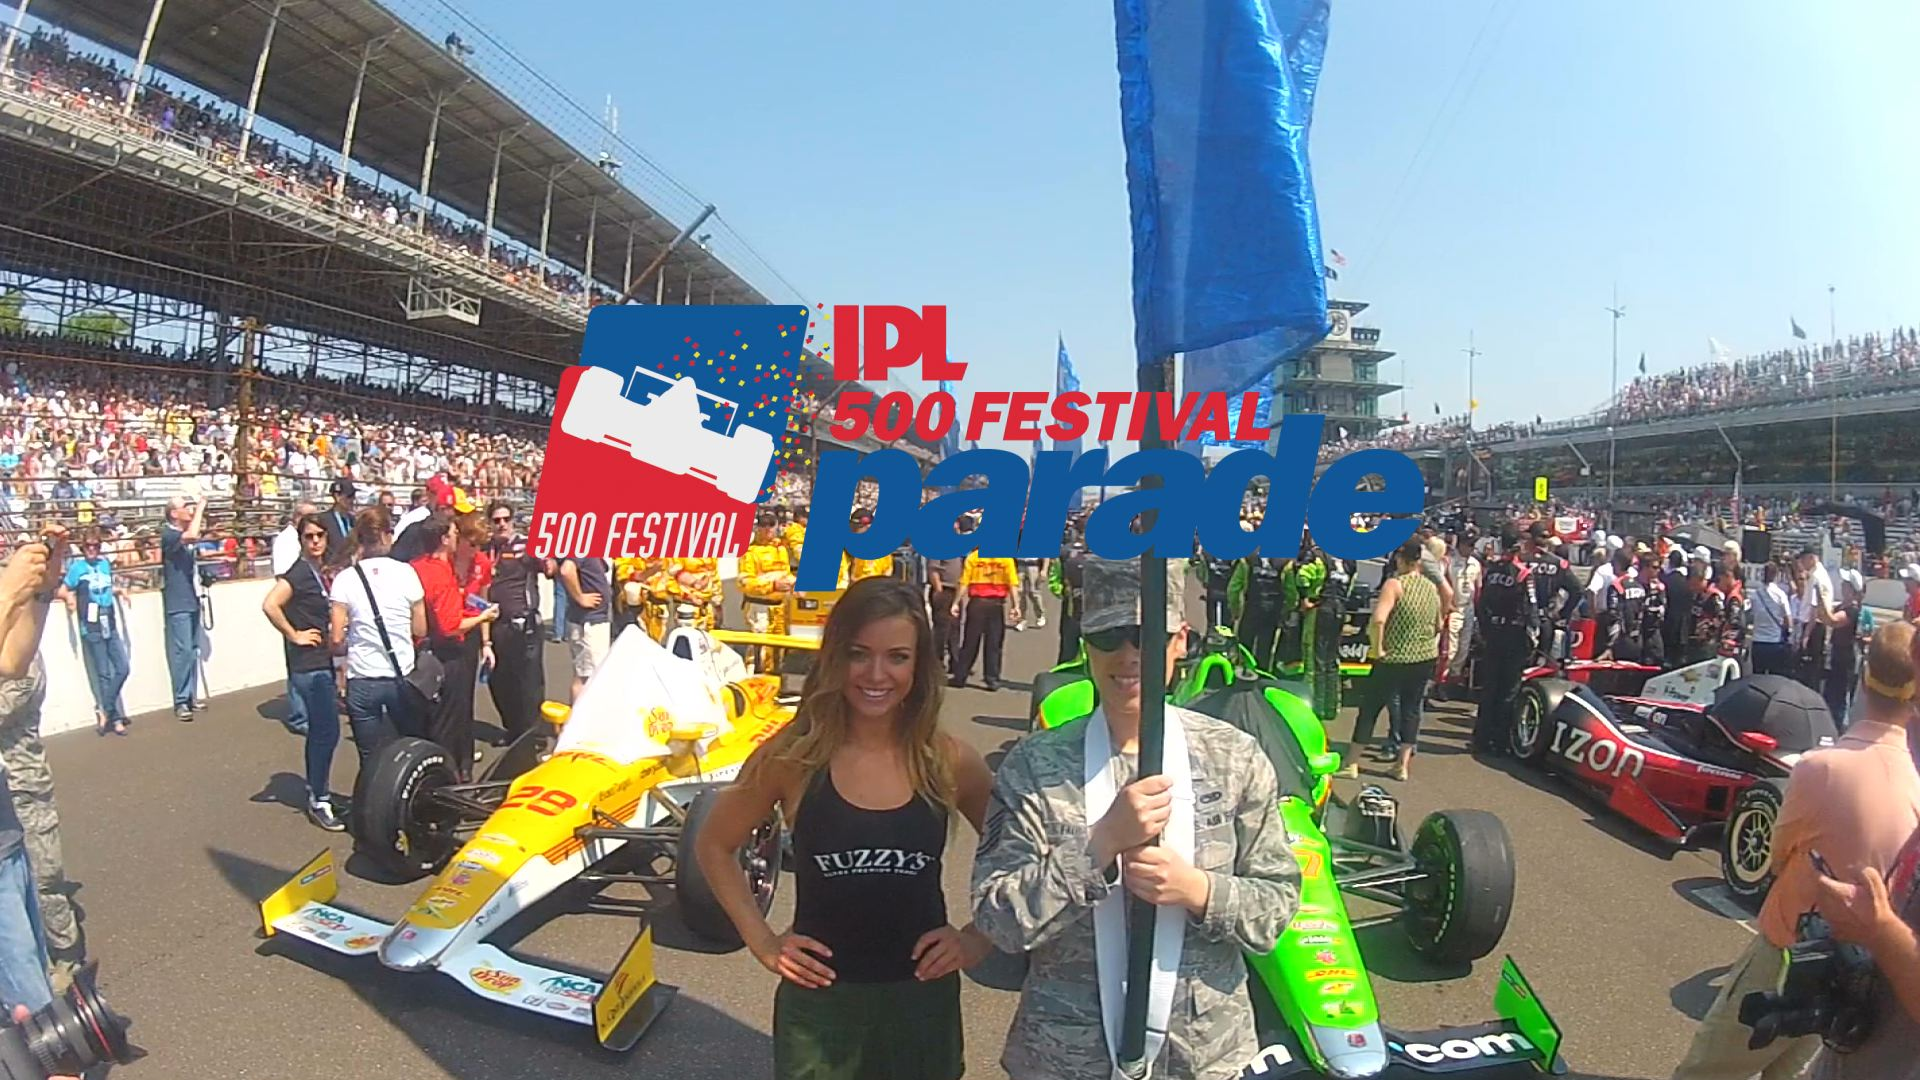 Indianapolis 500 Festival Parade Video Production